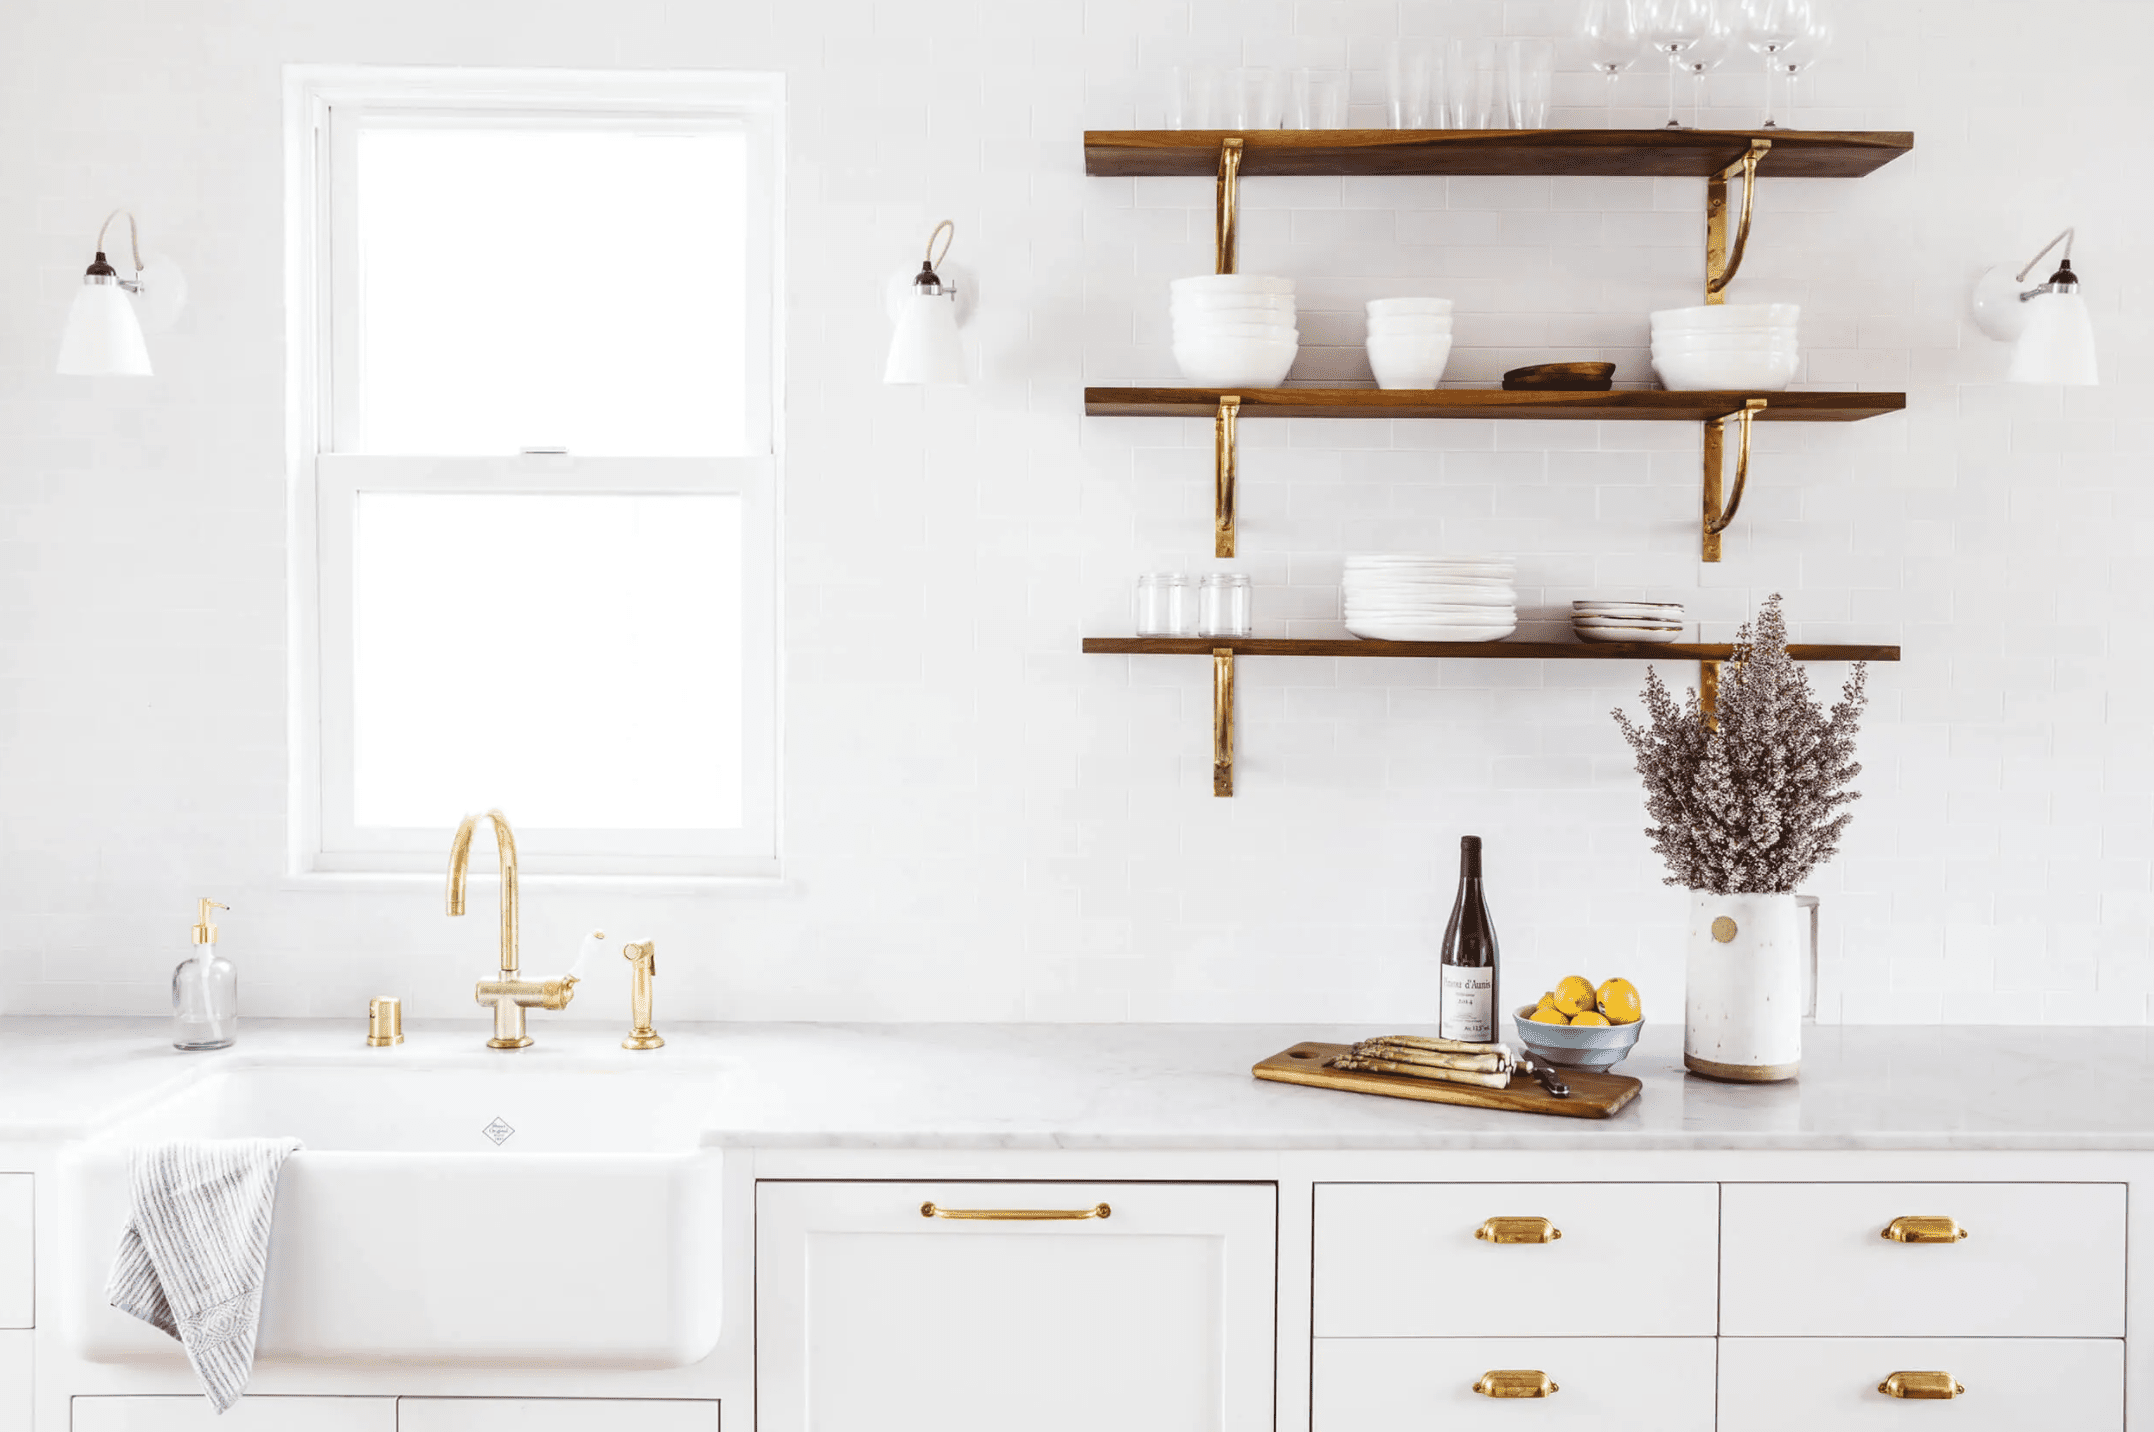 All white kitchen with wood accents